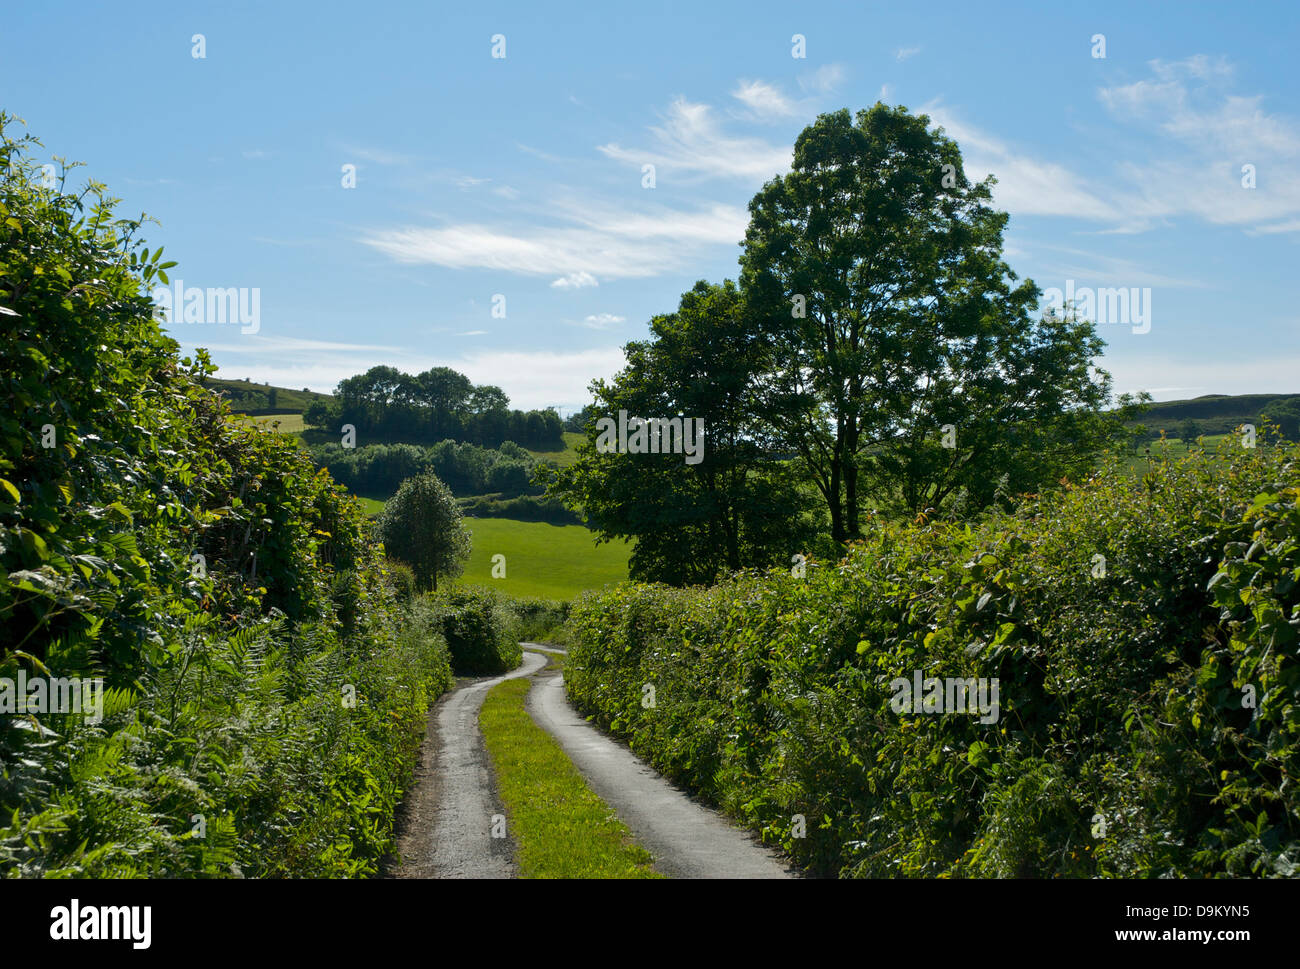 Narrow country lane near the village of Hutton Roof, Cumbria, England UK - Stock Image